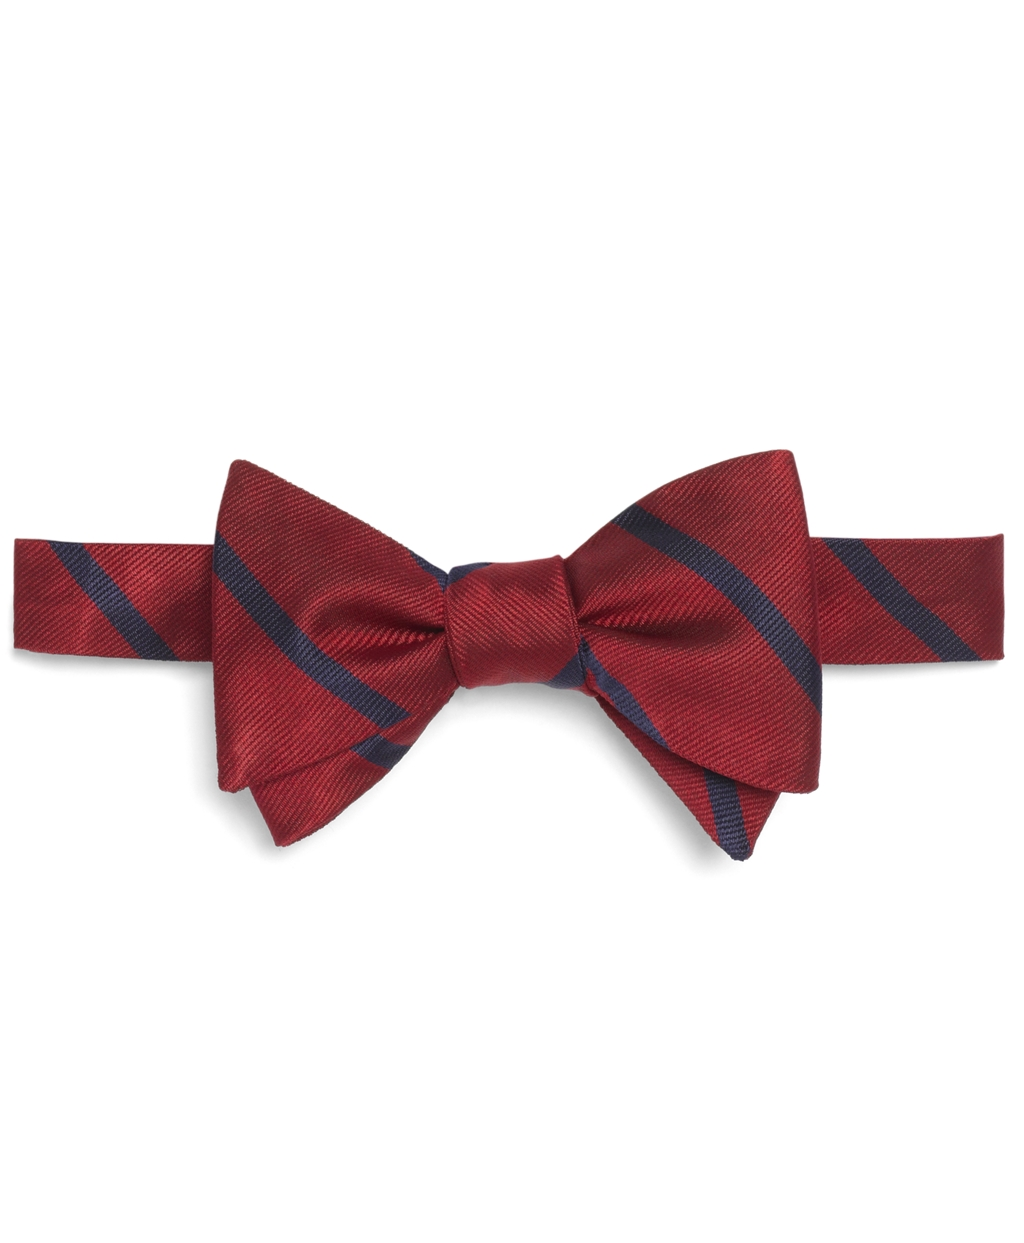 Lyst - Brooks Brothers Bb#3 Repp Bow Tie in Red for Men